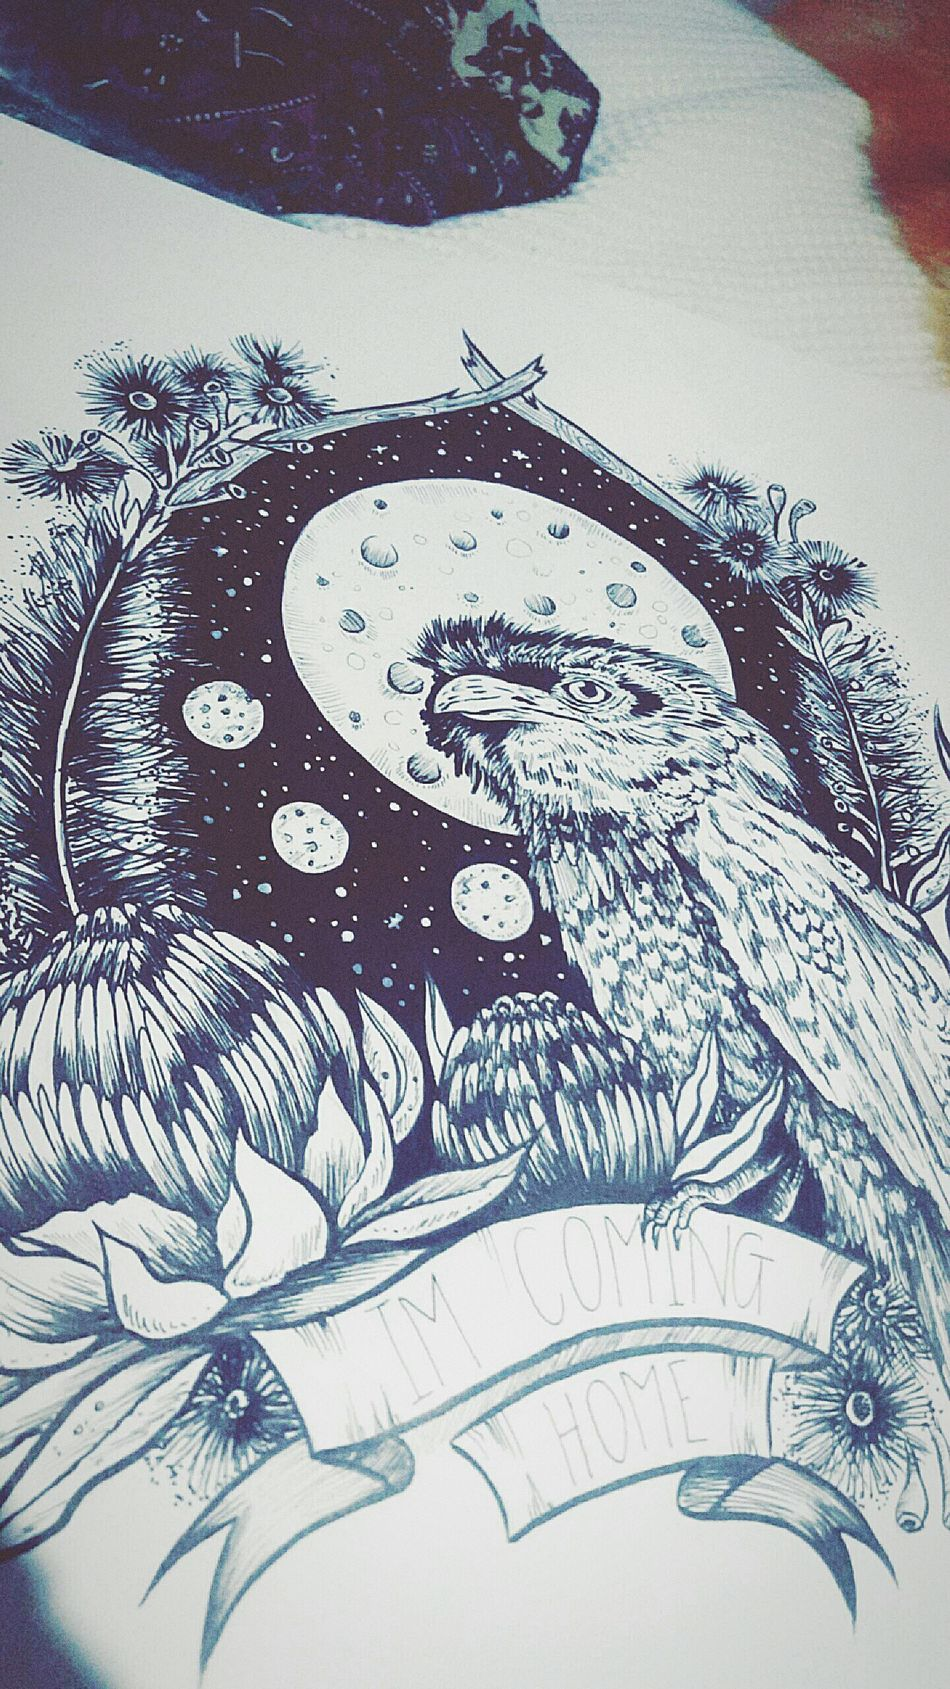 Artist Home Australia Summer Photography Life Love Nature Melbourneartists Inspire Createdaily Dotwork Fineliner Illustration Art Summerstone Animal Tawny Frogmouth Owl Waratah Bottlebrush Redgum Flowers Natives Moon